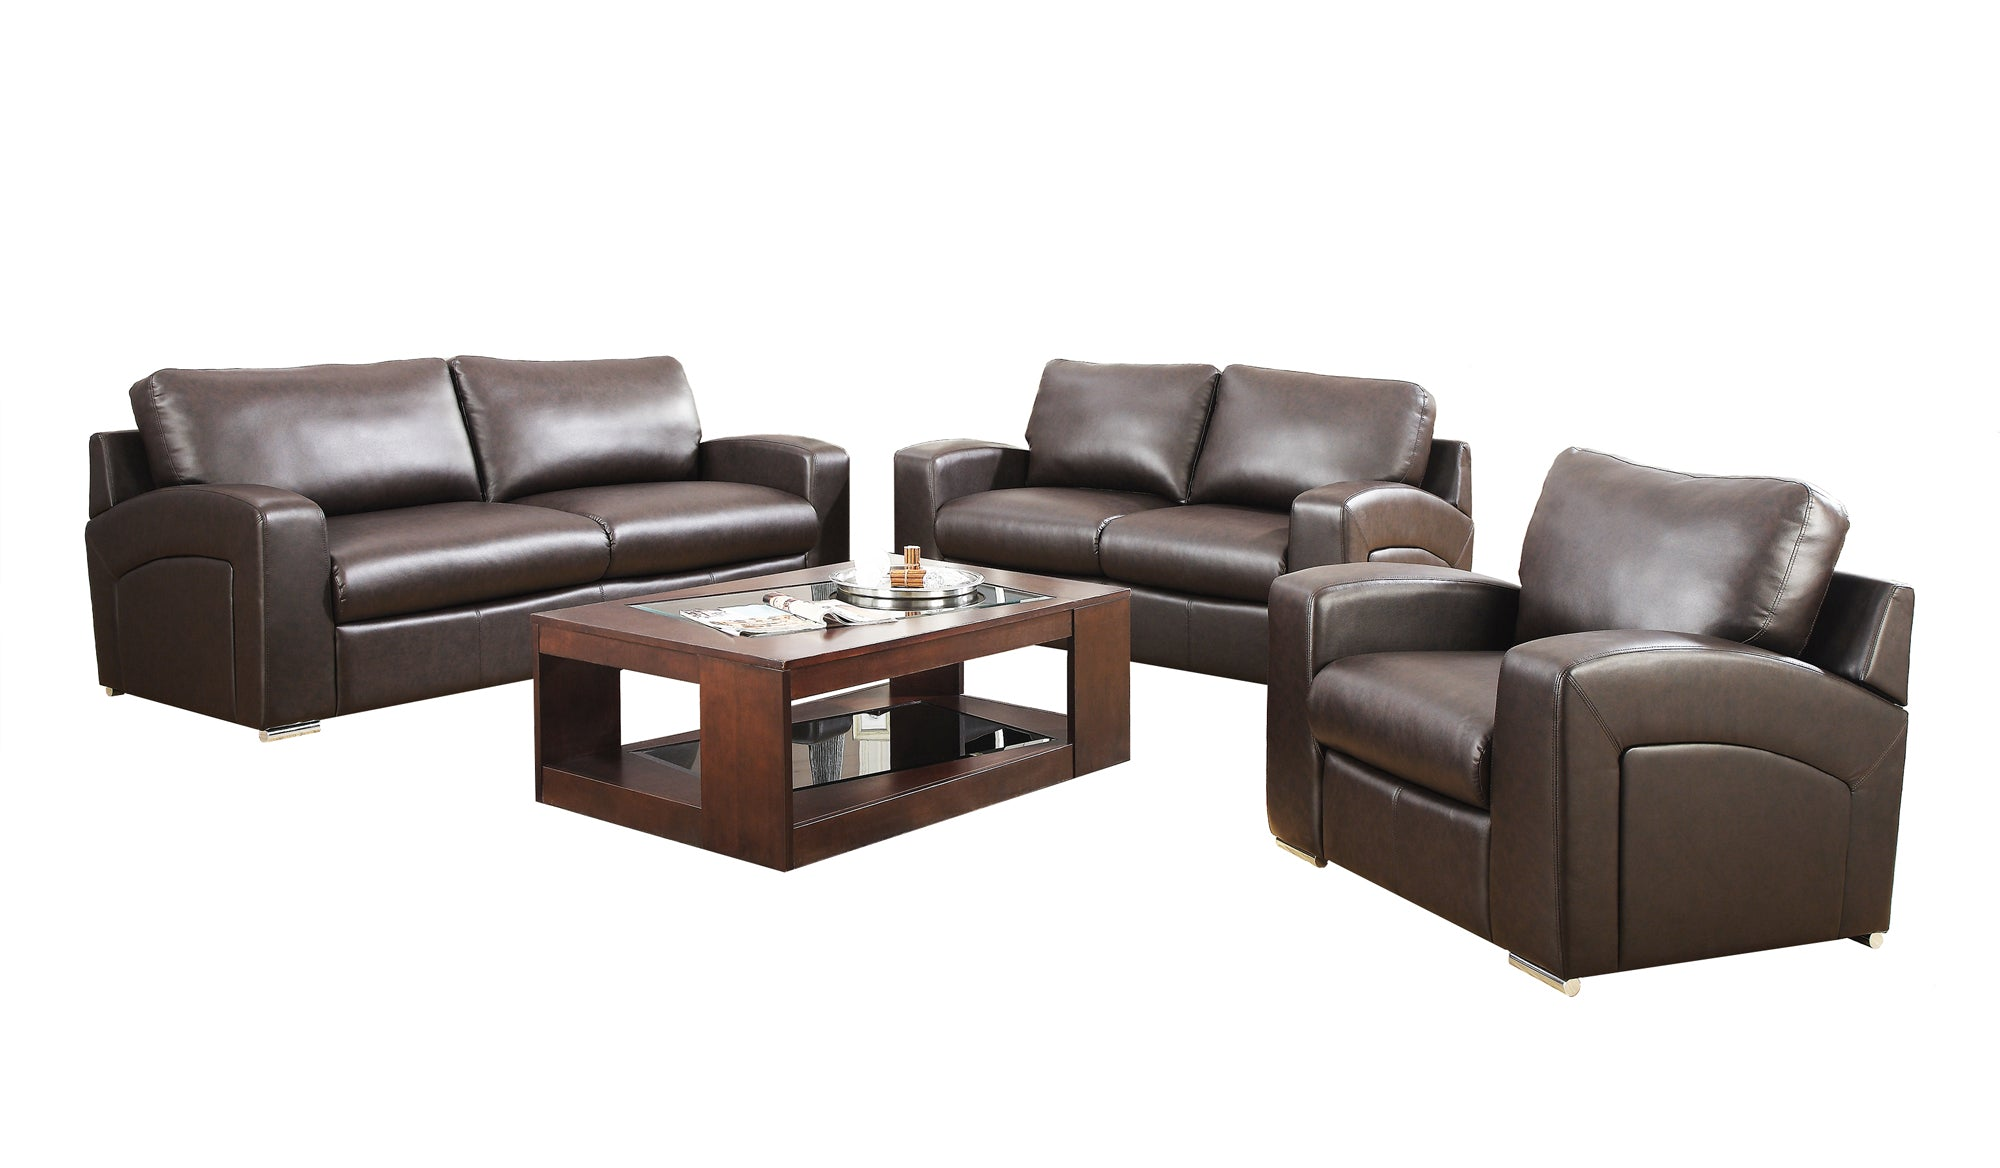 "35"" x 39"" x 36"" Dark Brown, Bonded Leather - Chair"